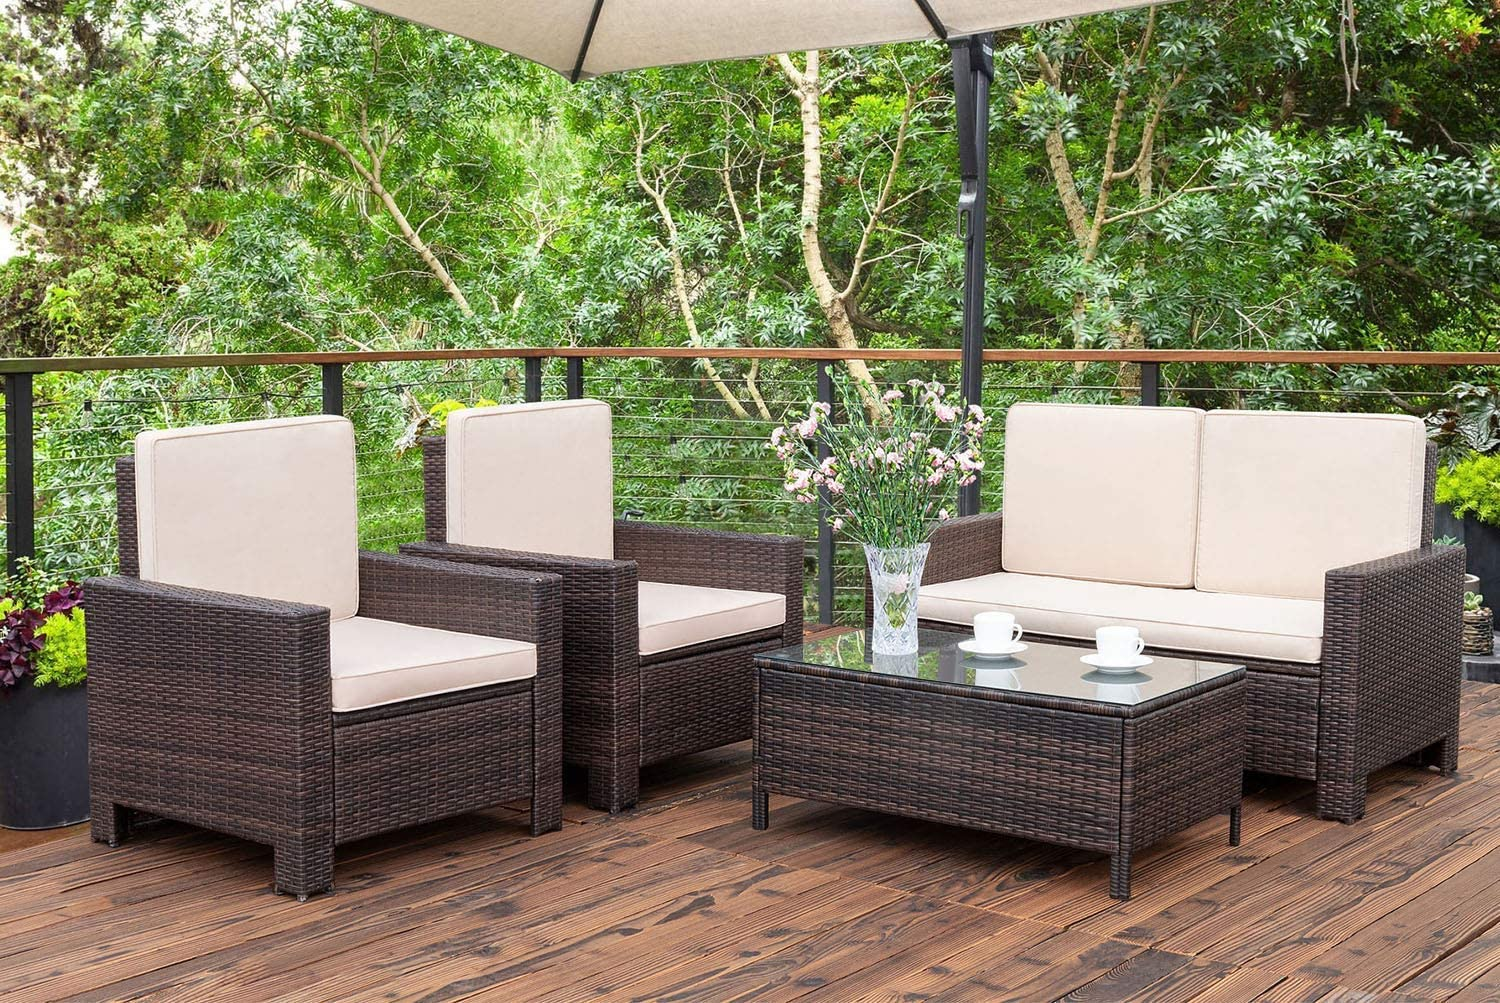 Homall 10 Pieces Outdoor Patio Furniture Sets Rattan Chair Wicker